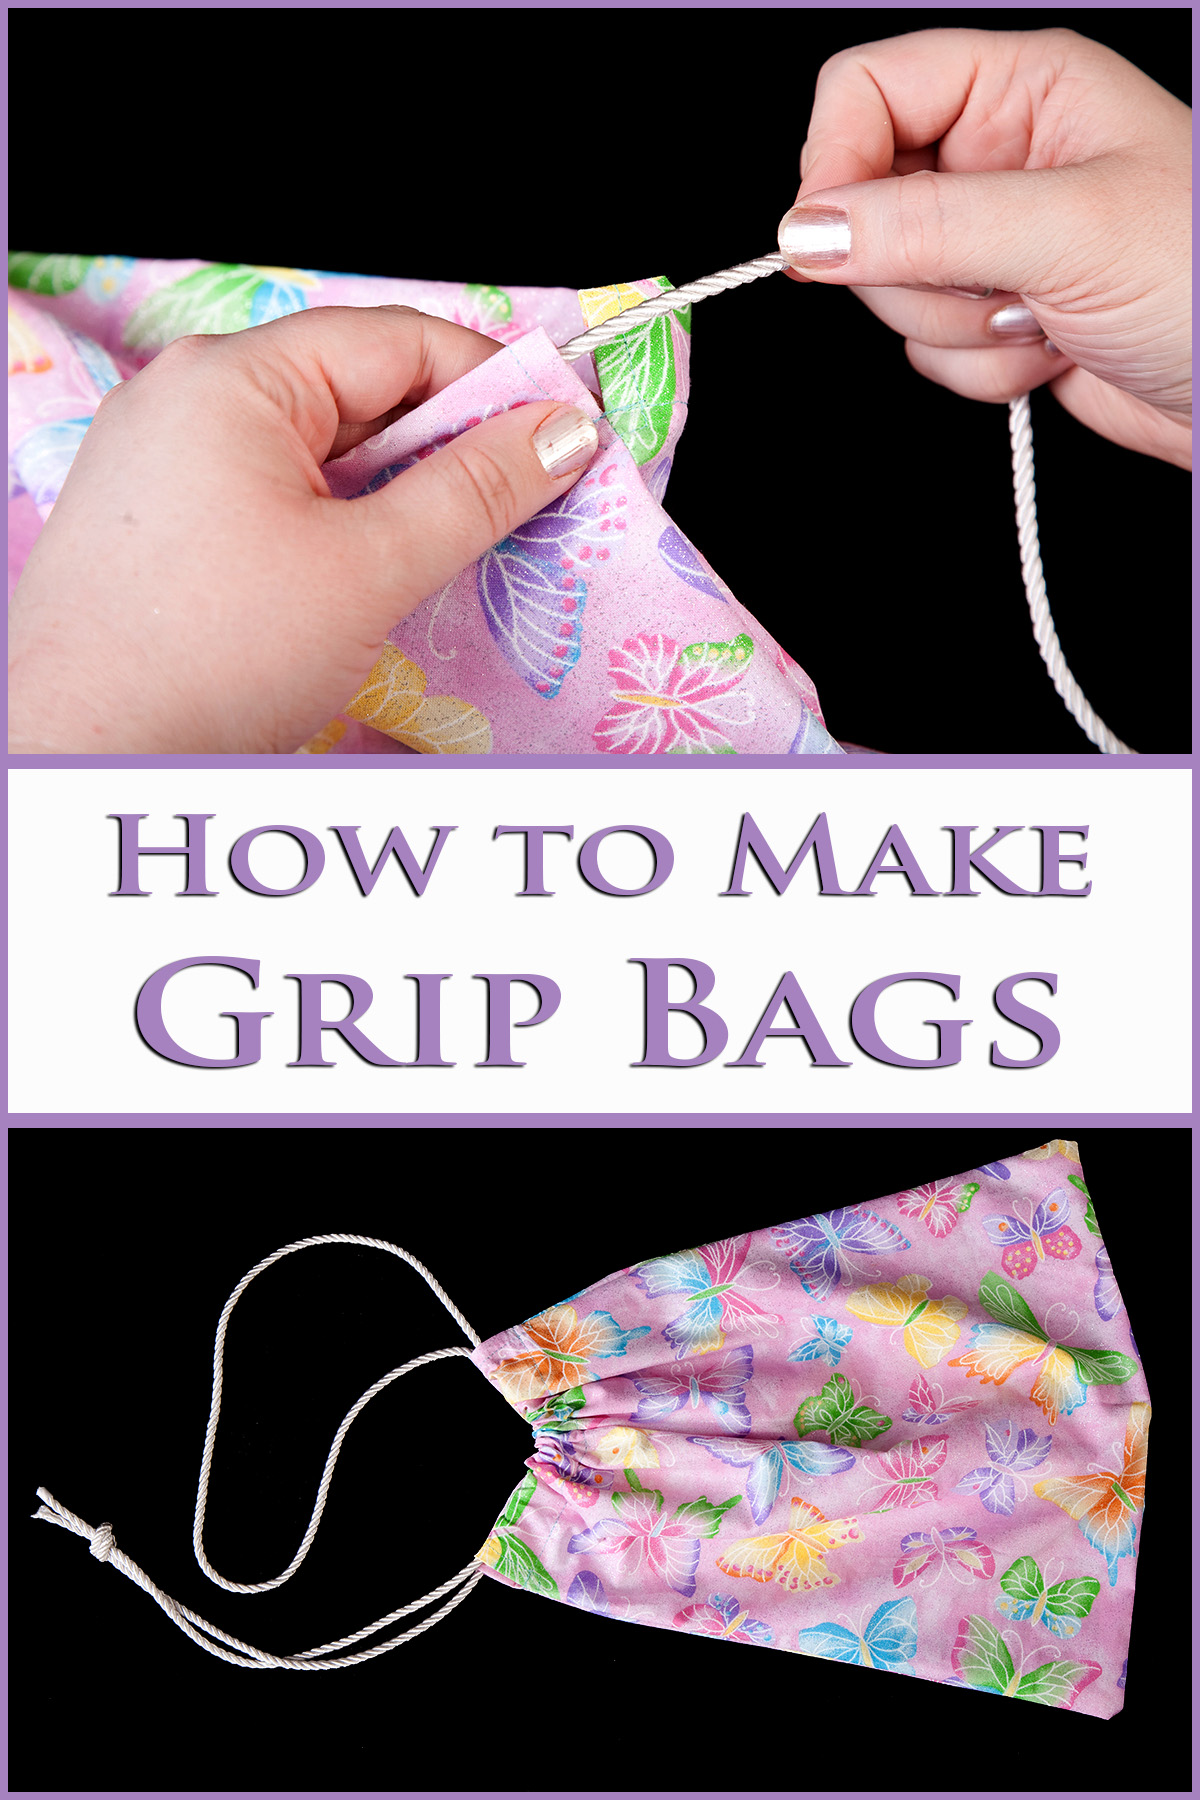 """A two part compilation image showing white cord being drawn through the opening of a light purple butterfly print bag, and the finished bag.  Purple lettering says """"How to Make Grip Bags""""."""